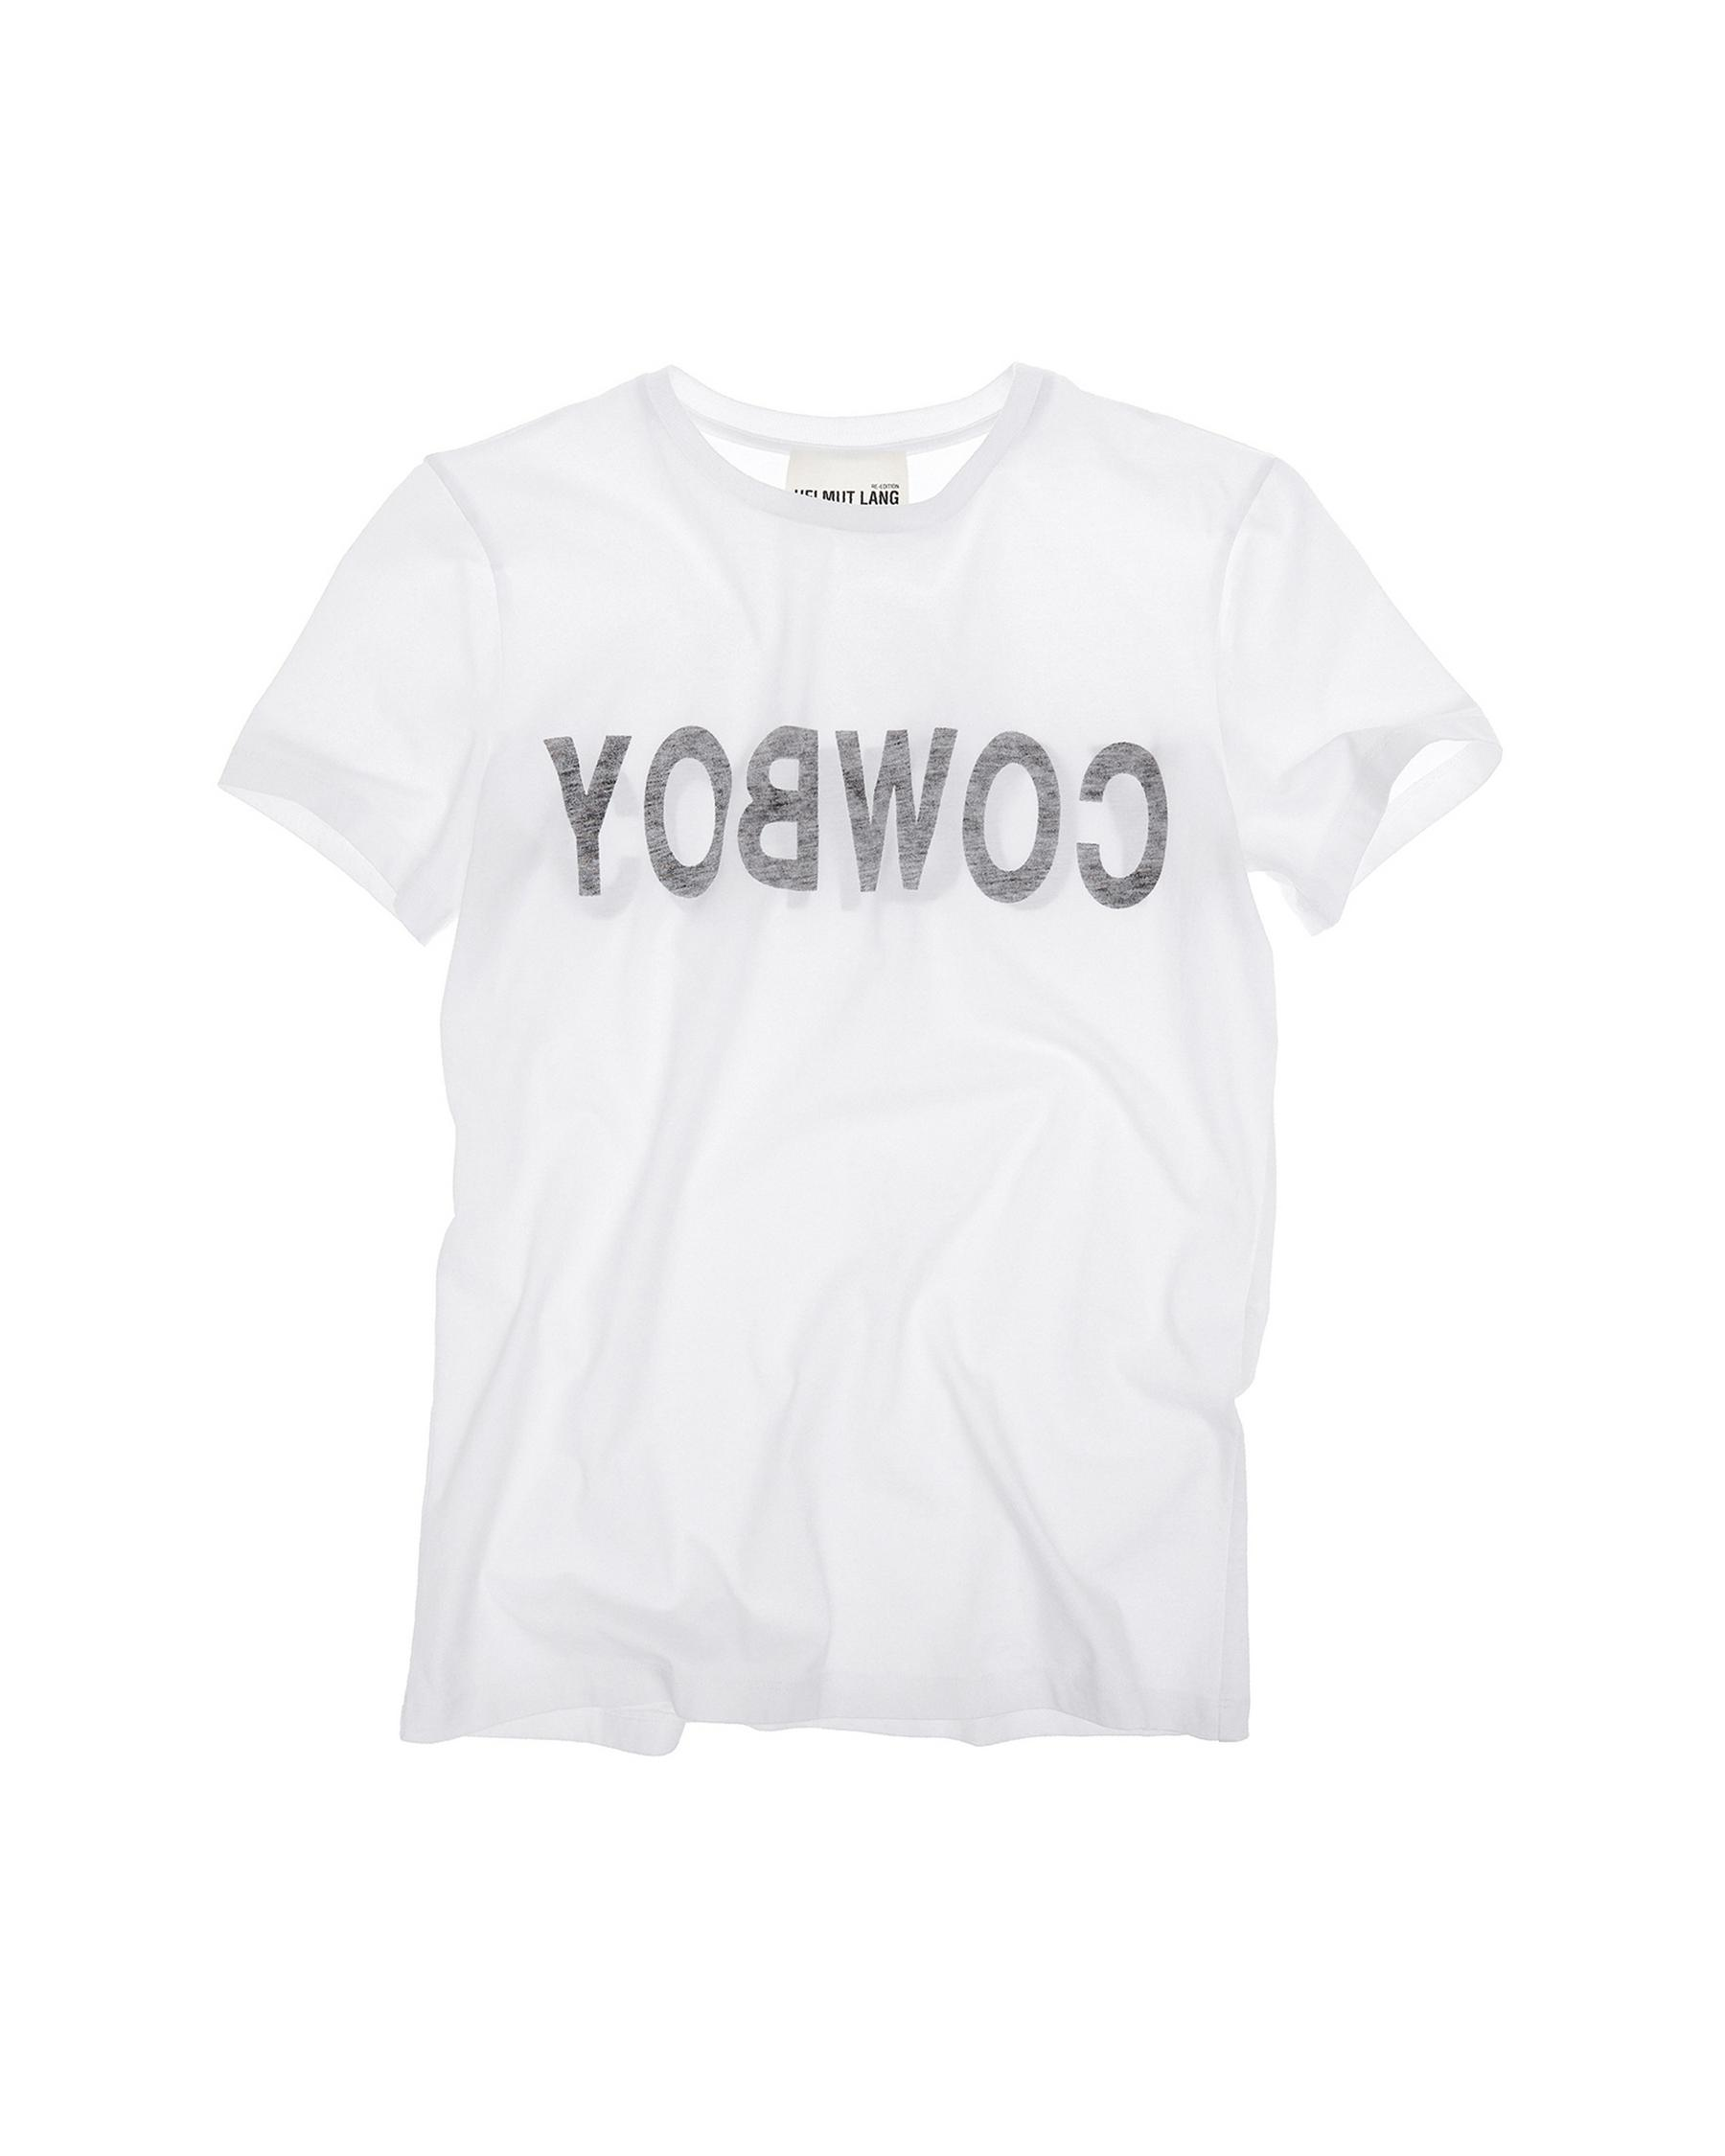 Archive Cowboy Tee